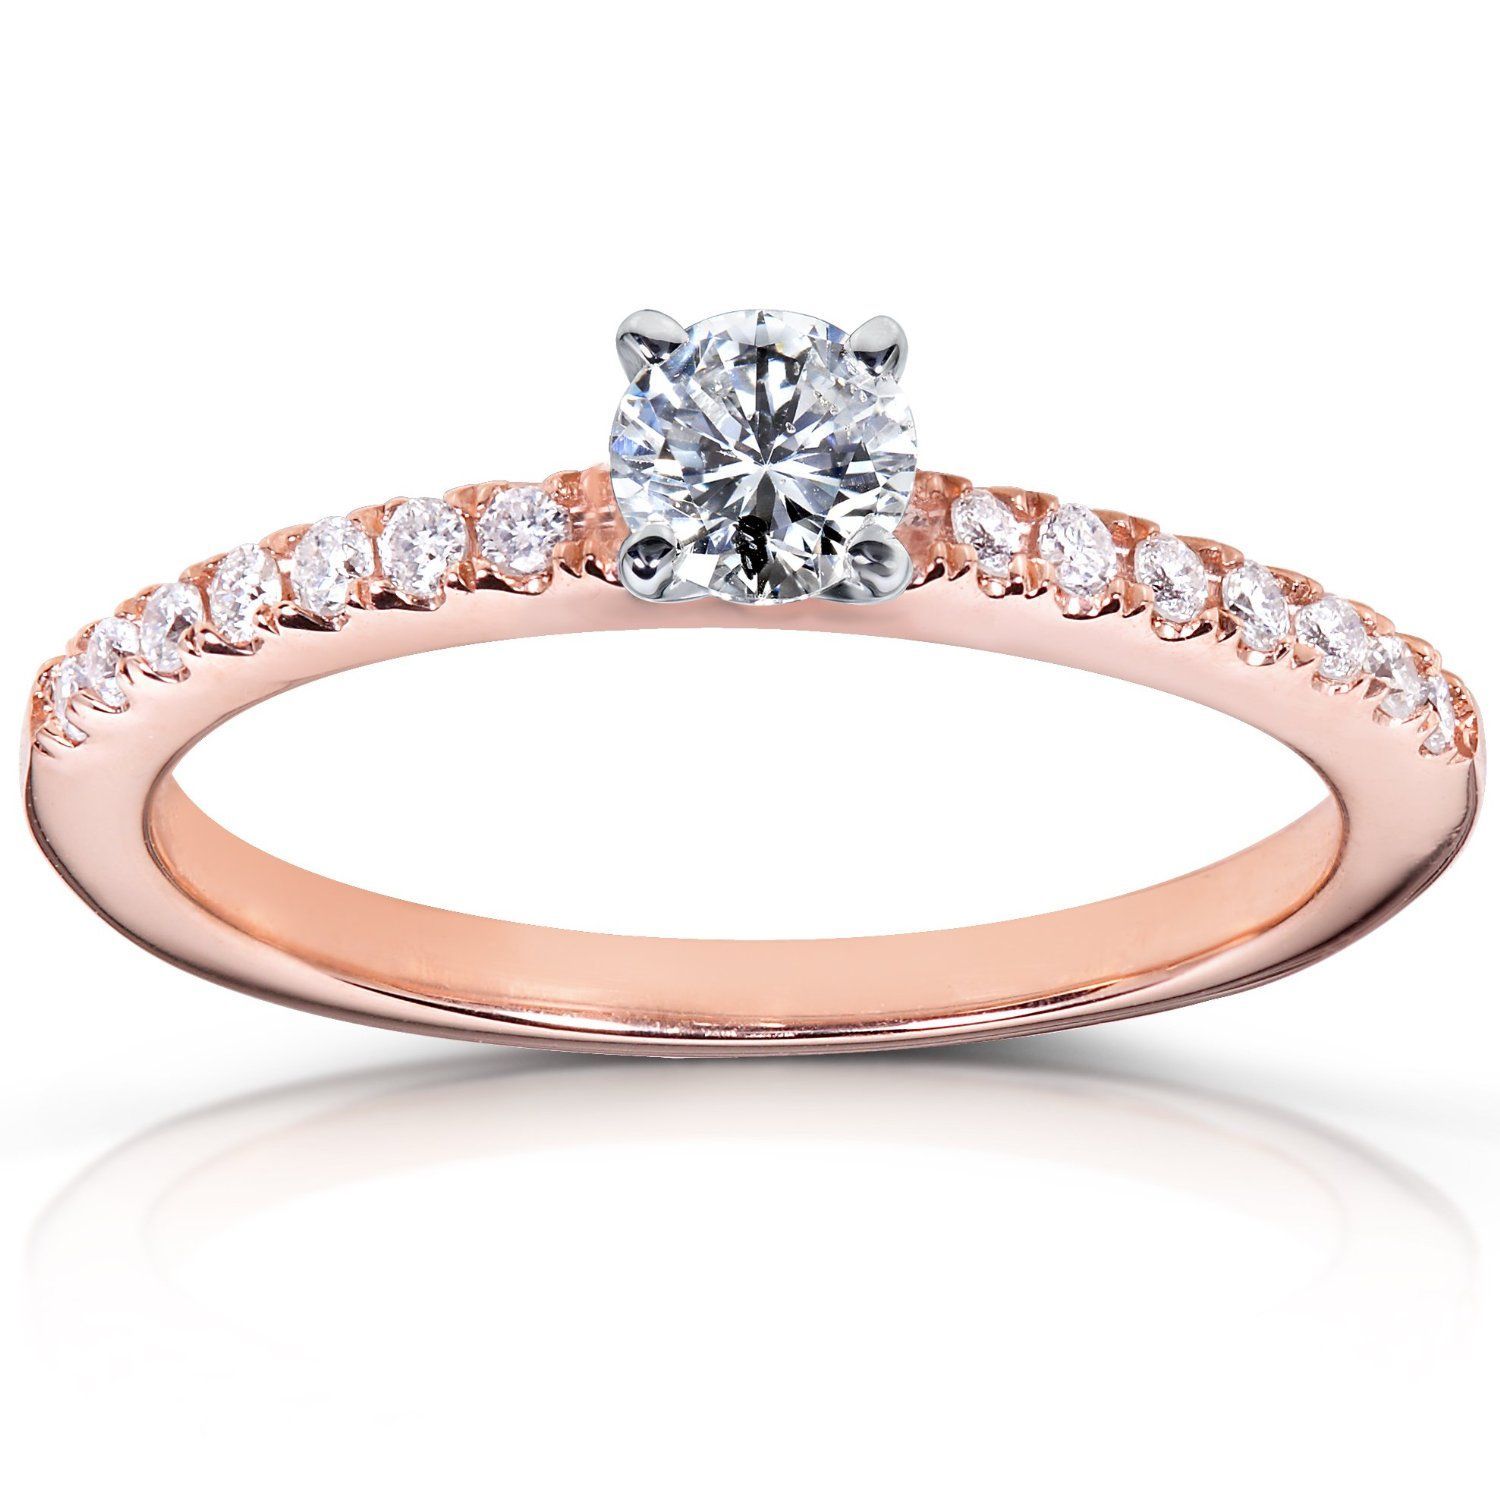 rose gold wedding rings 14k Rose Gold Round Diamond Engagement Ring Here s an elegant simply beautiful solitaire